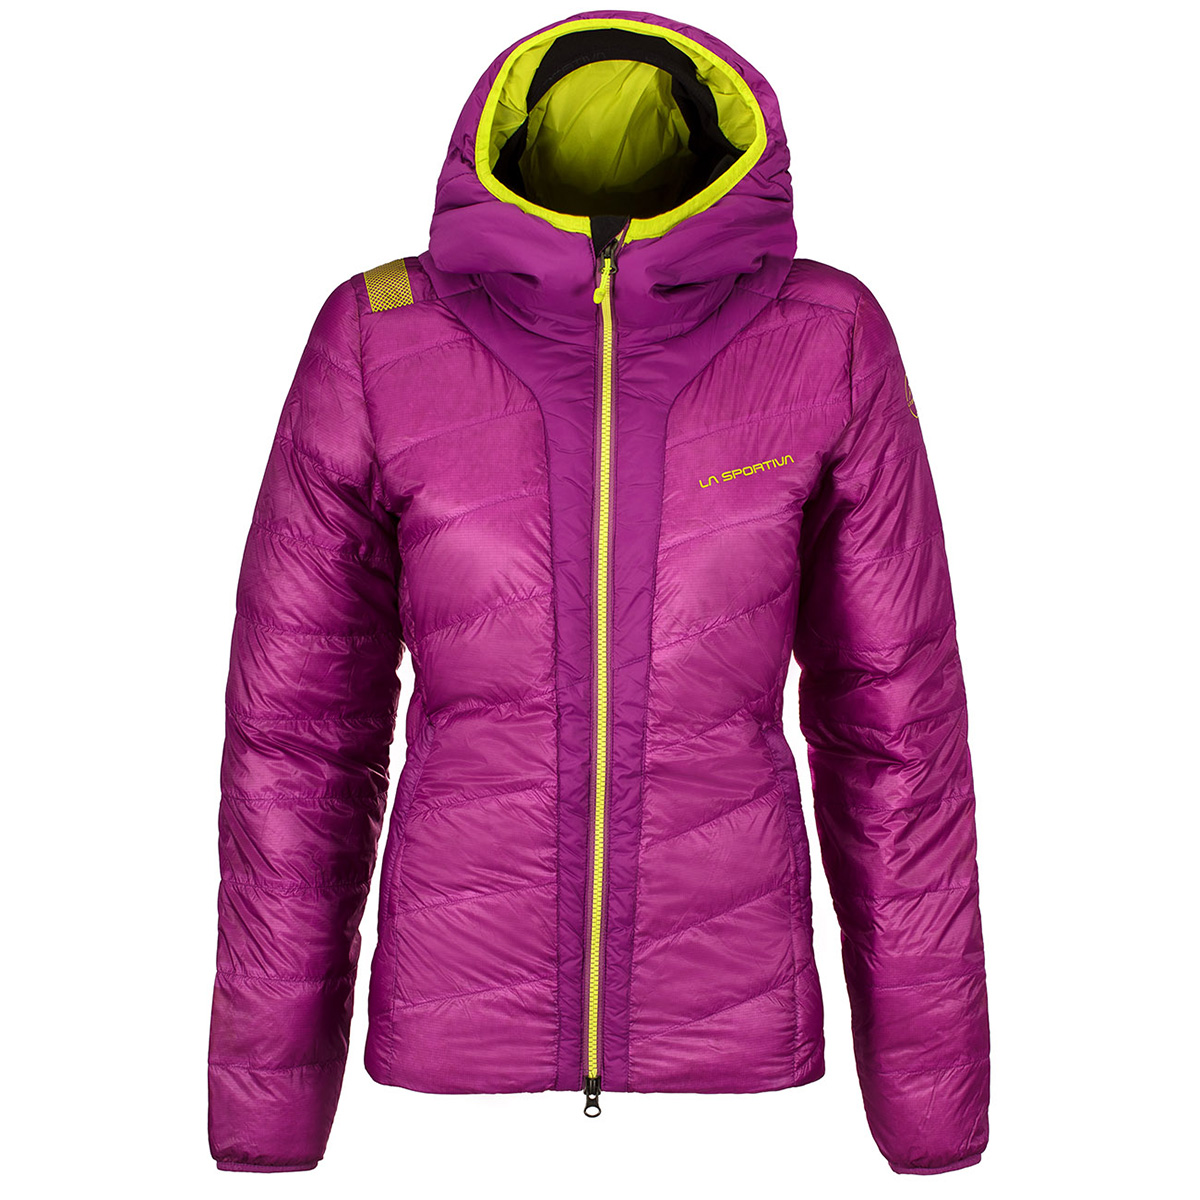 Piumino Frequency Down Jacket W con cappuccio integrato